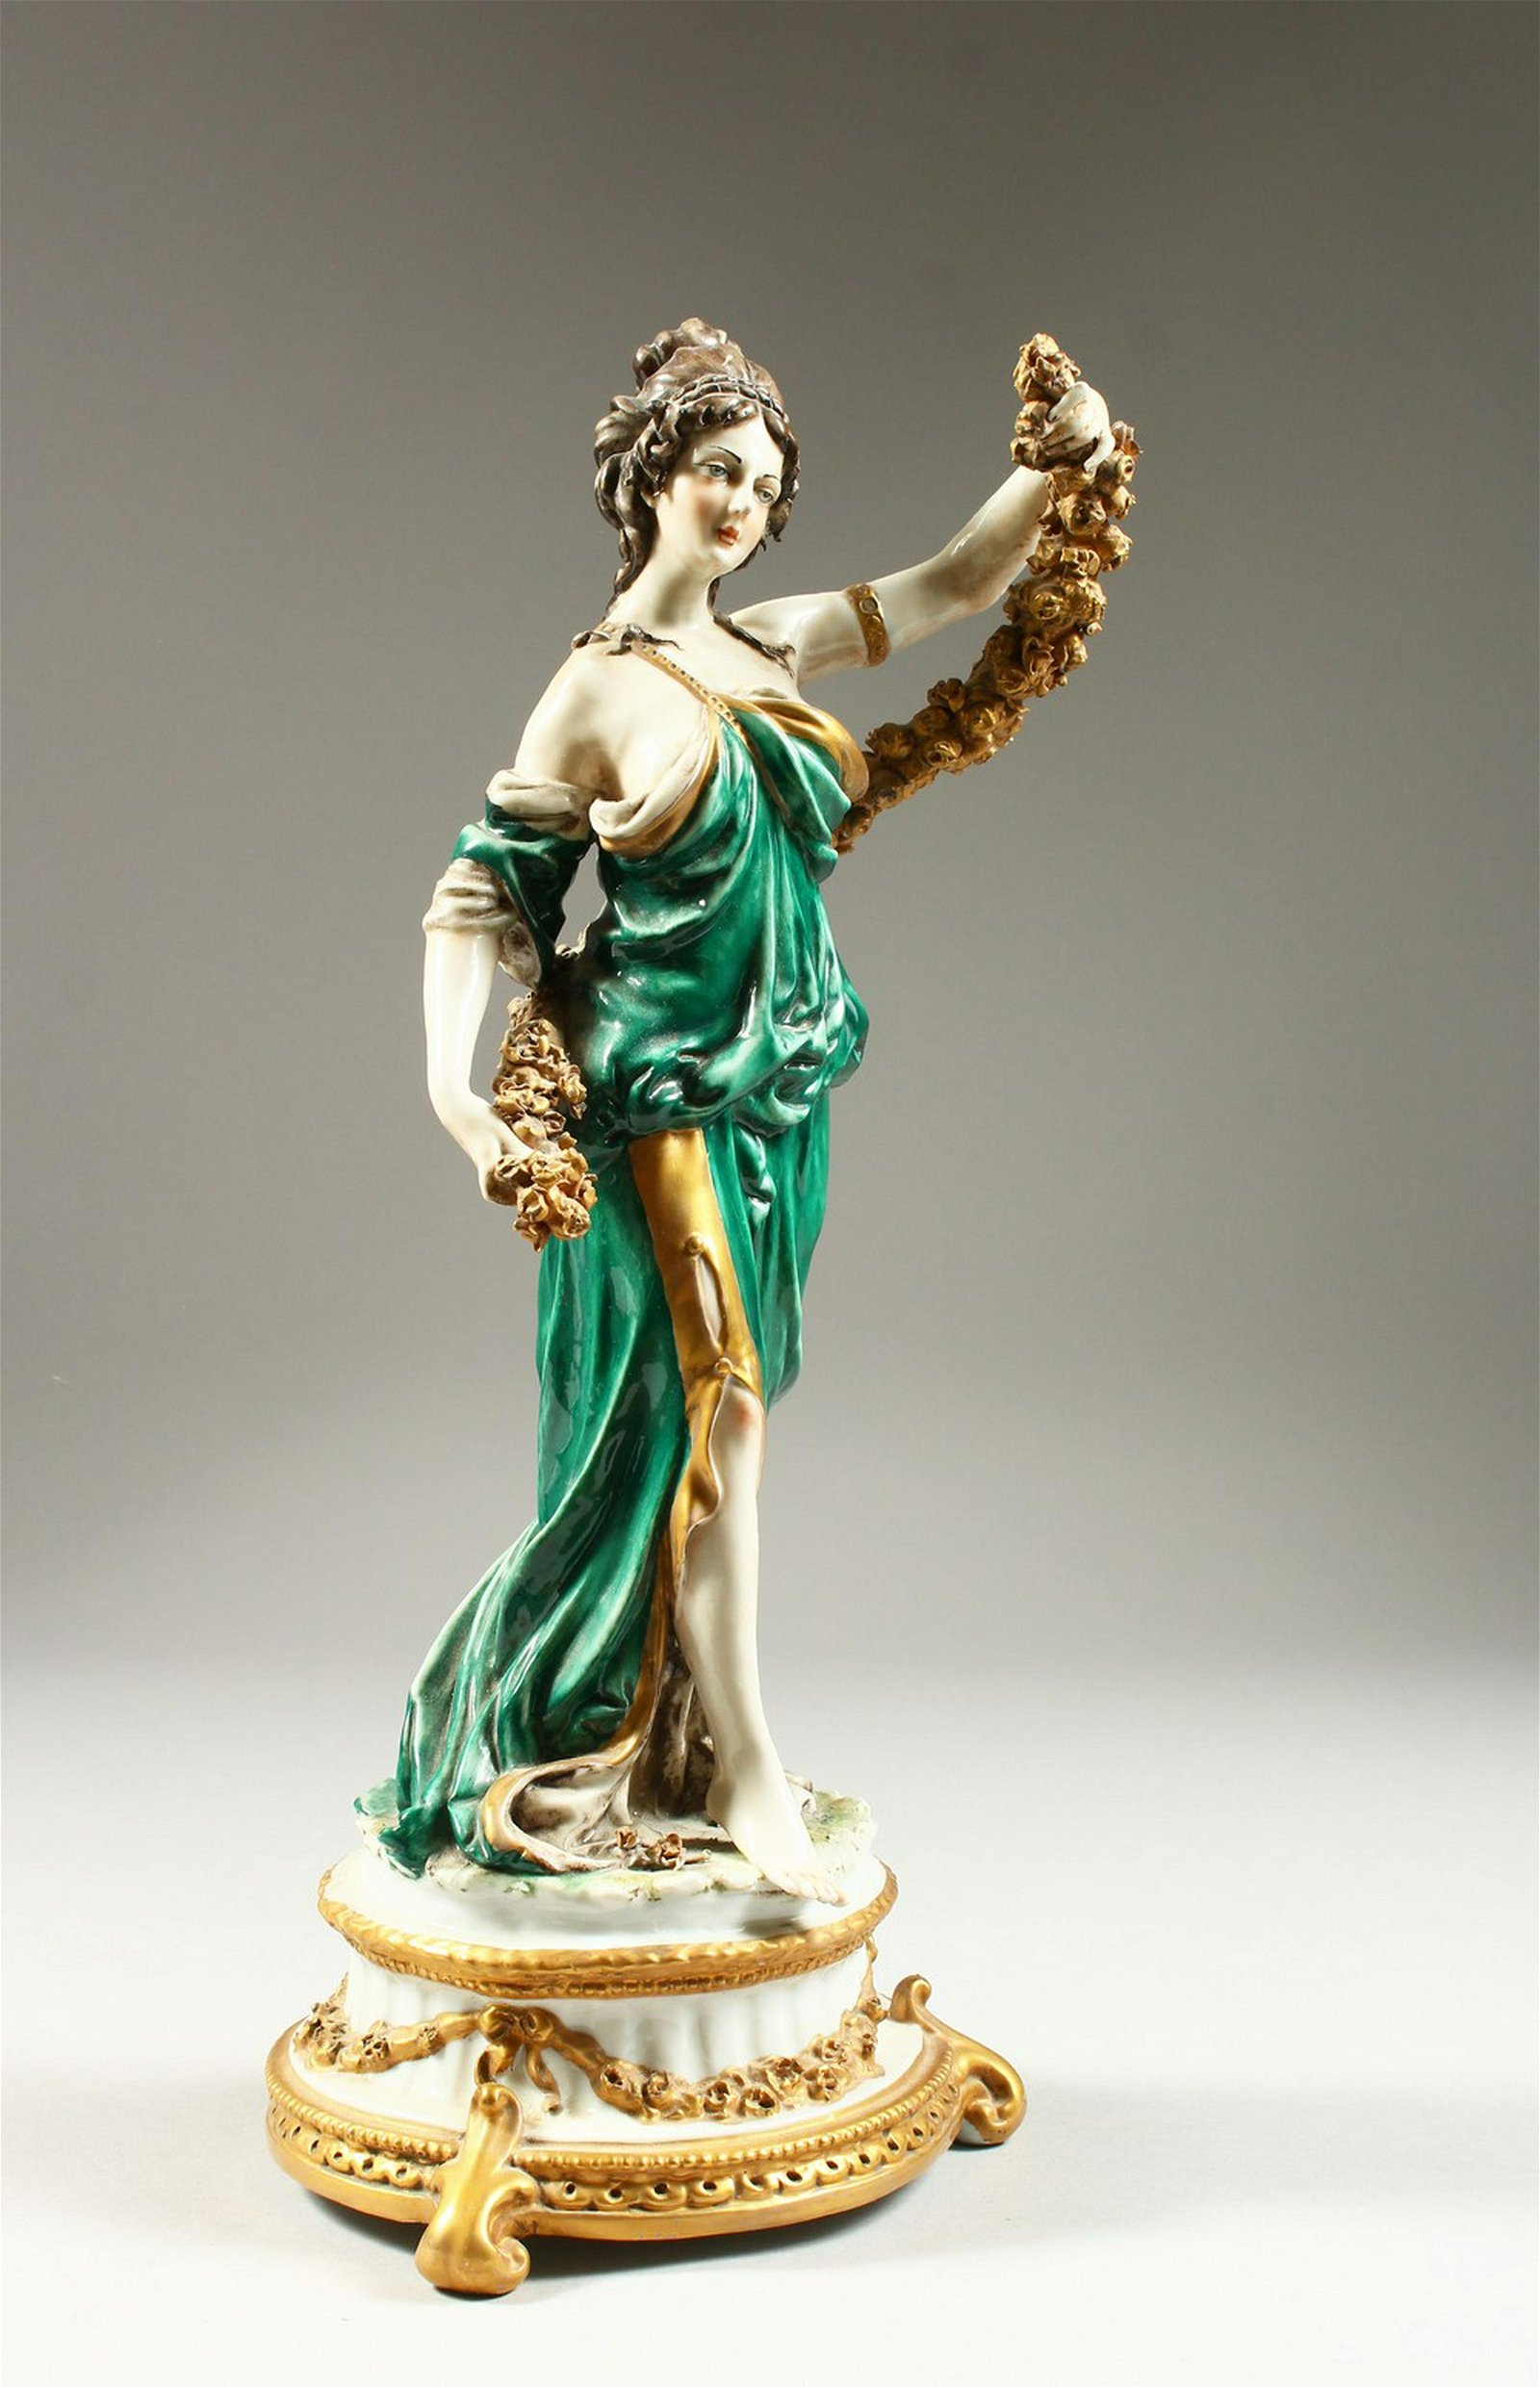 A CAPODIMONTE PORCELAIN FIGURE OF A YOUNG CLASSICAL